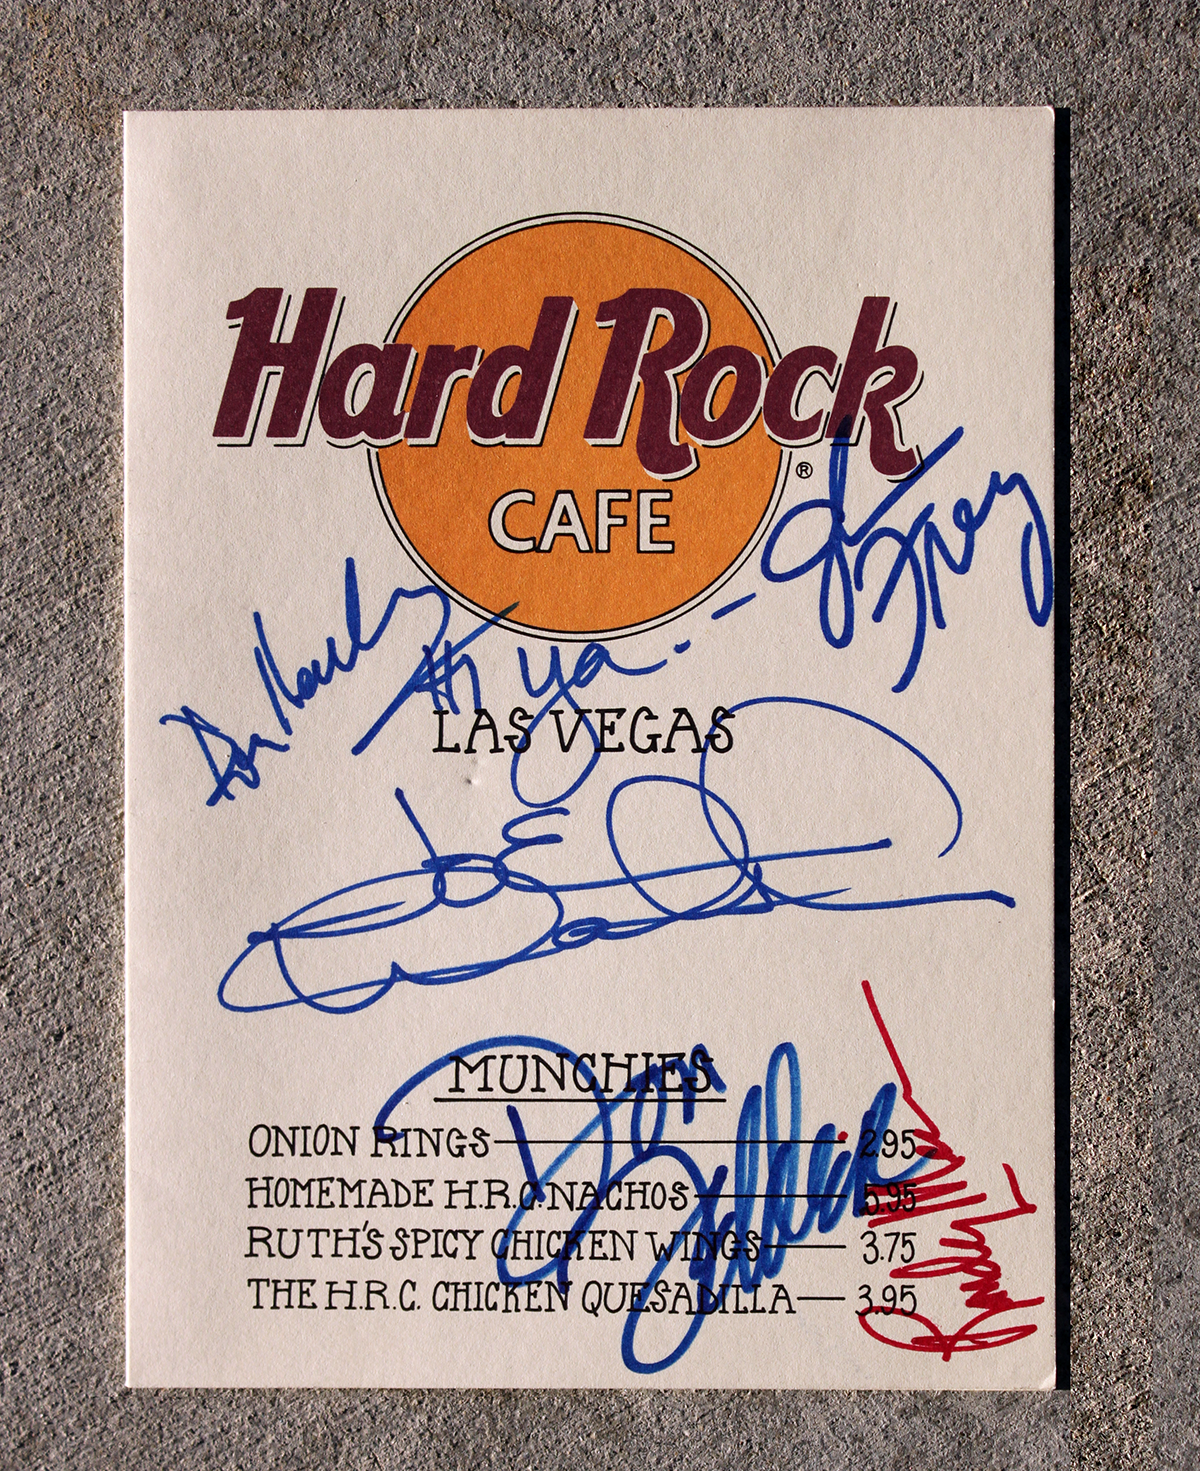 Eagles - Hard Rock Café Menu